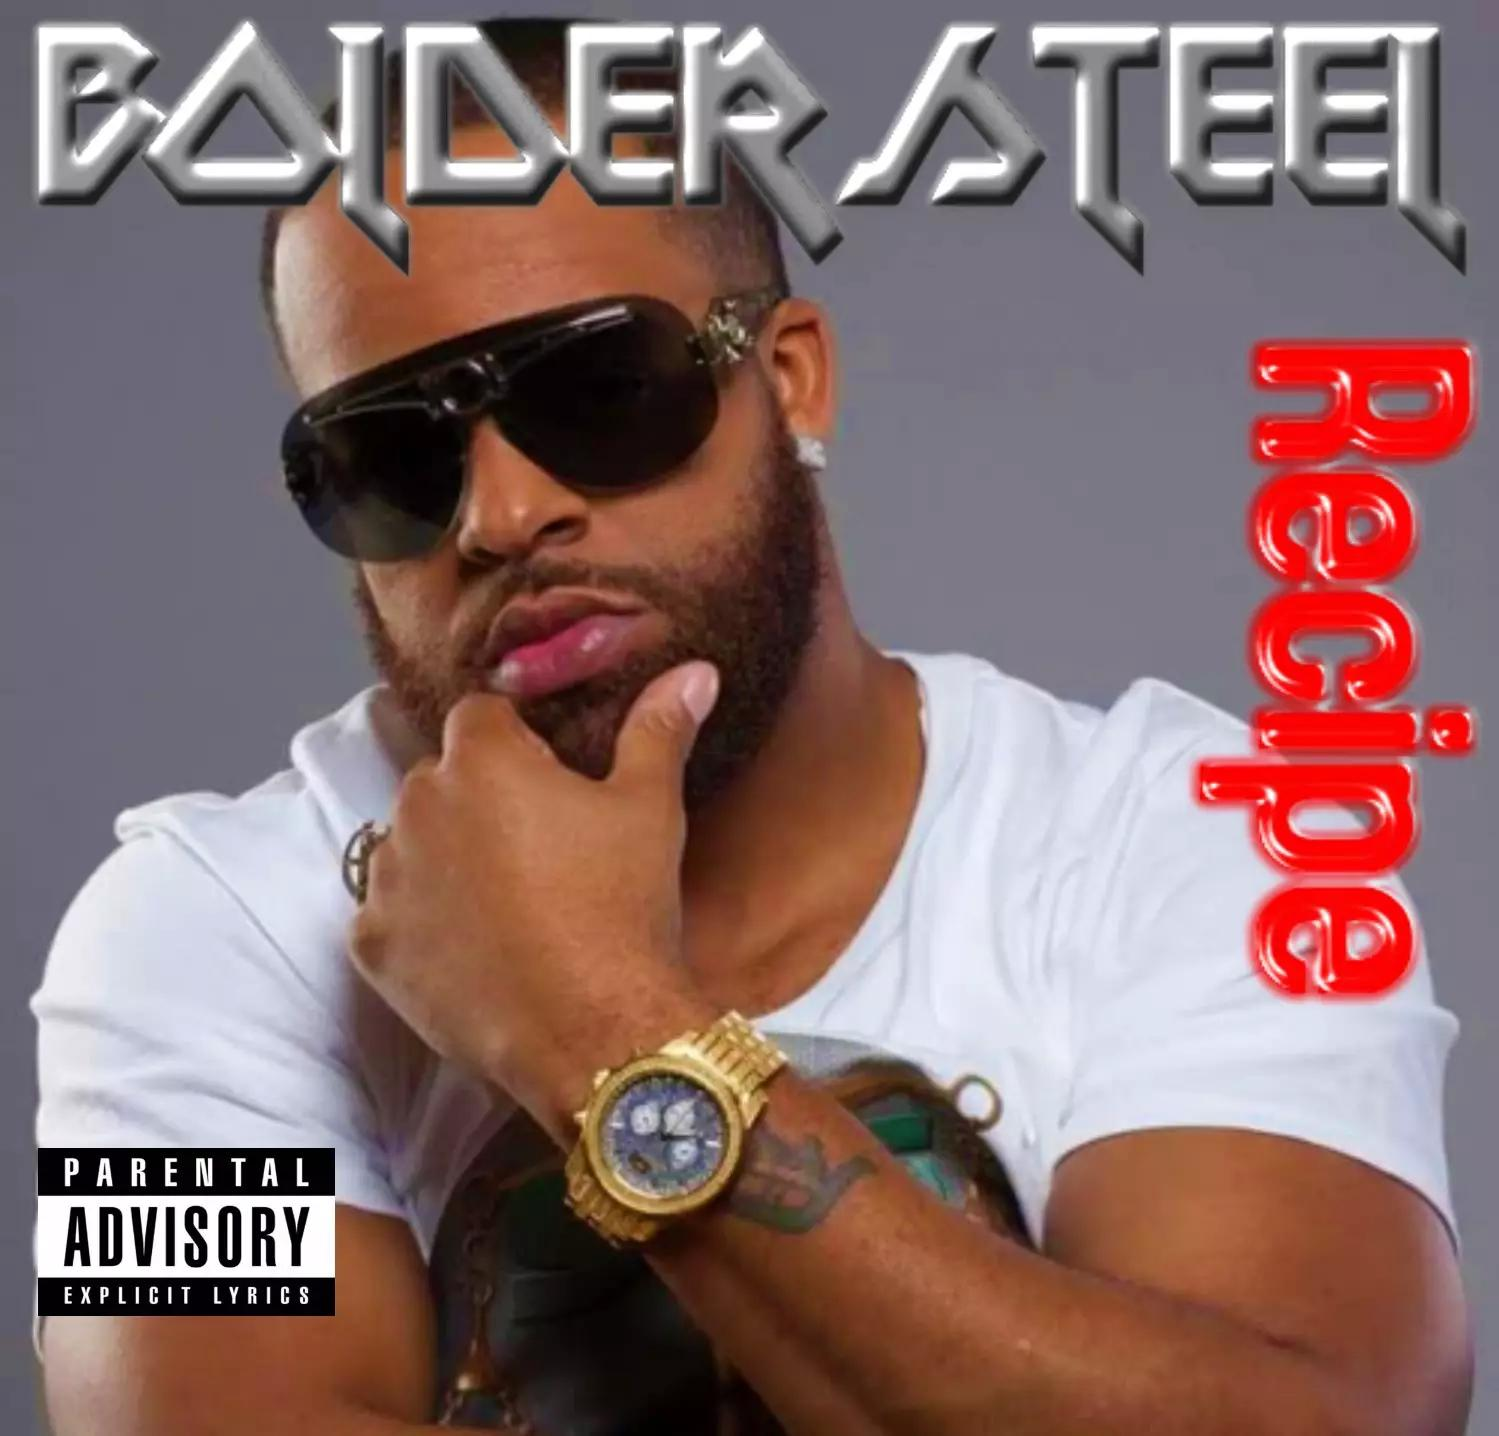 BOLDER-STEEL-Recipe-Single-Cover